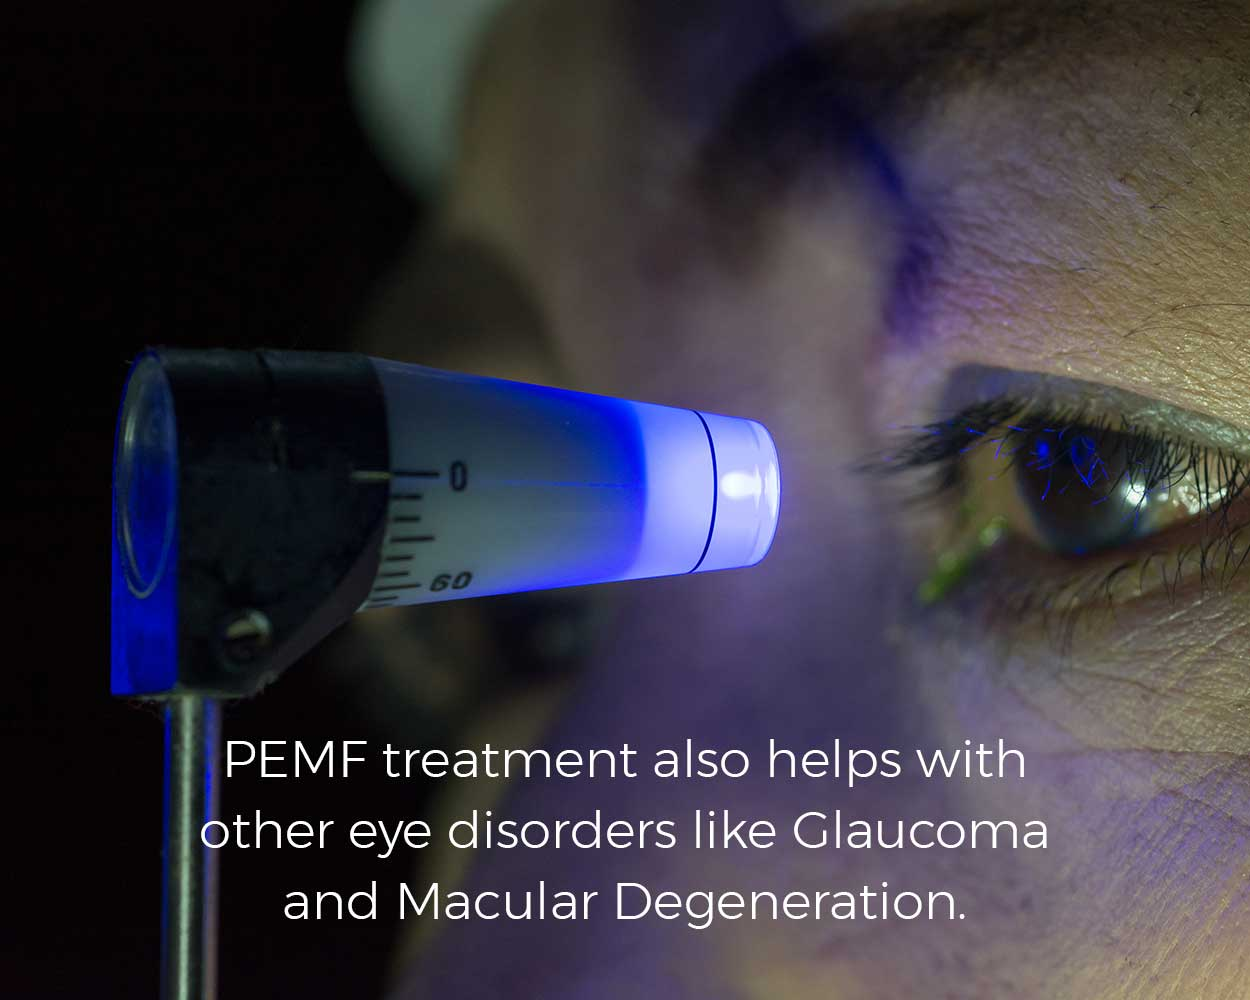 PEMF treatment also helps with other eye disorders like Glaucoma and Macular Degeneration